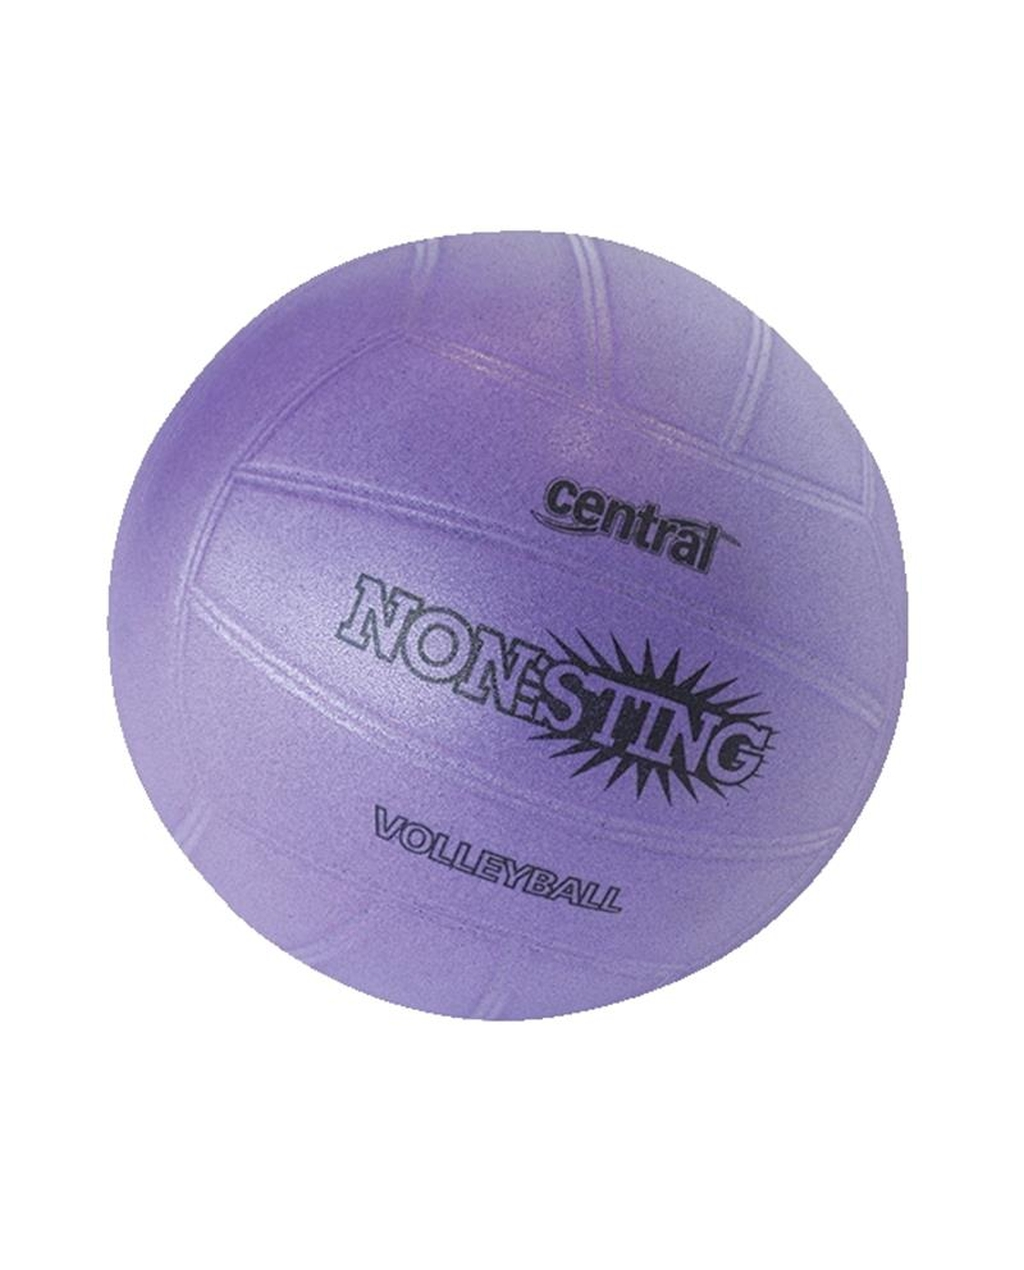 Non Sting Volleyball